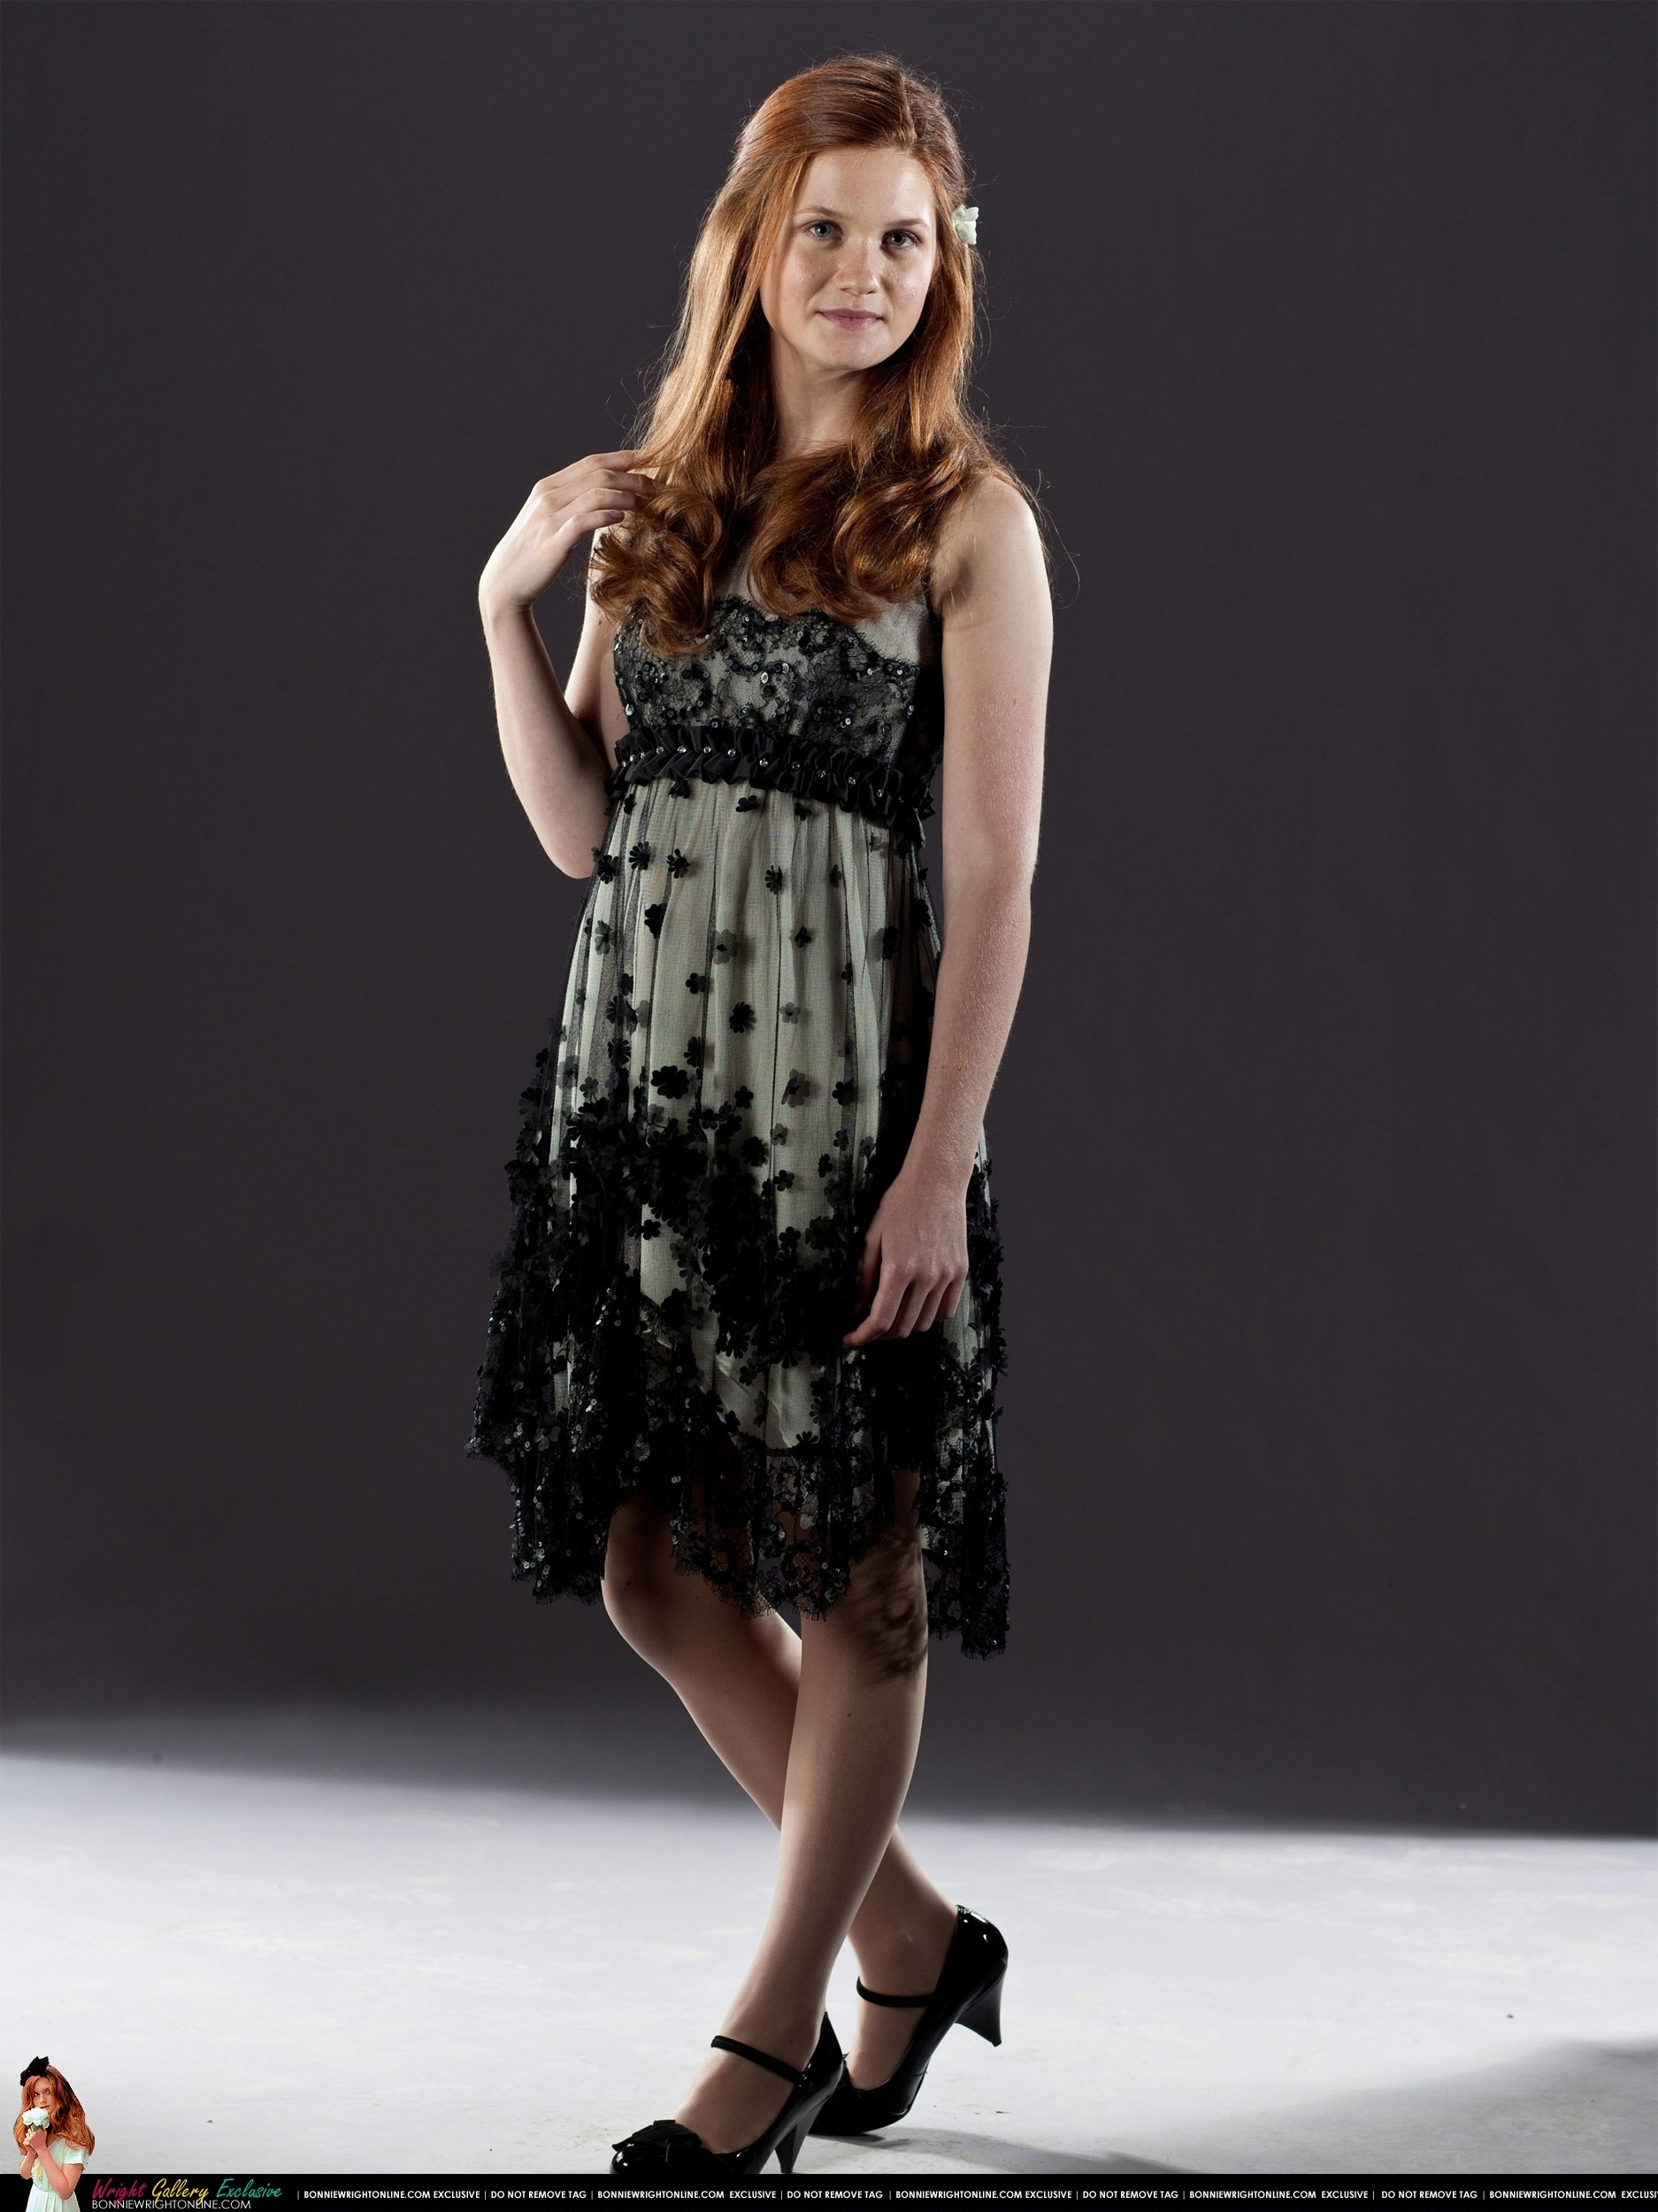 new ginny promo pics ginny weasley photo 21000101. Black Bedroom Furniture Sets. Home Design Ideas